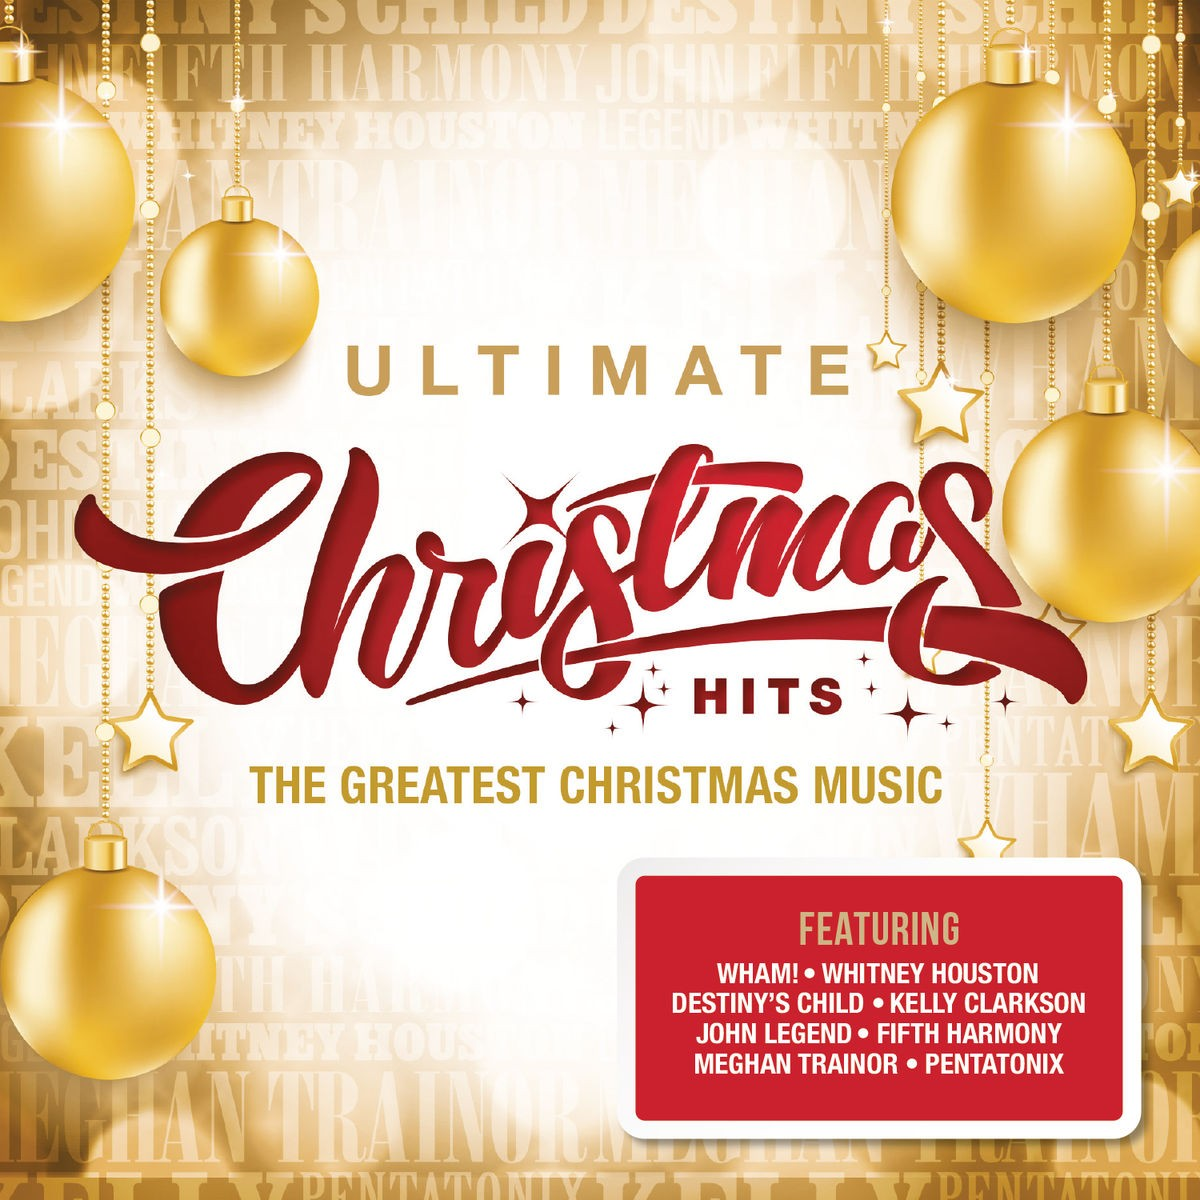 Ultimate Christmas Hits [CD] | Echo\'s Record Bar Online Store